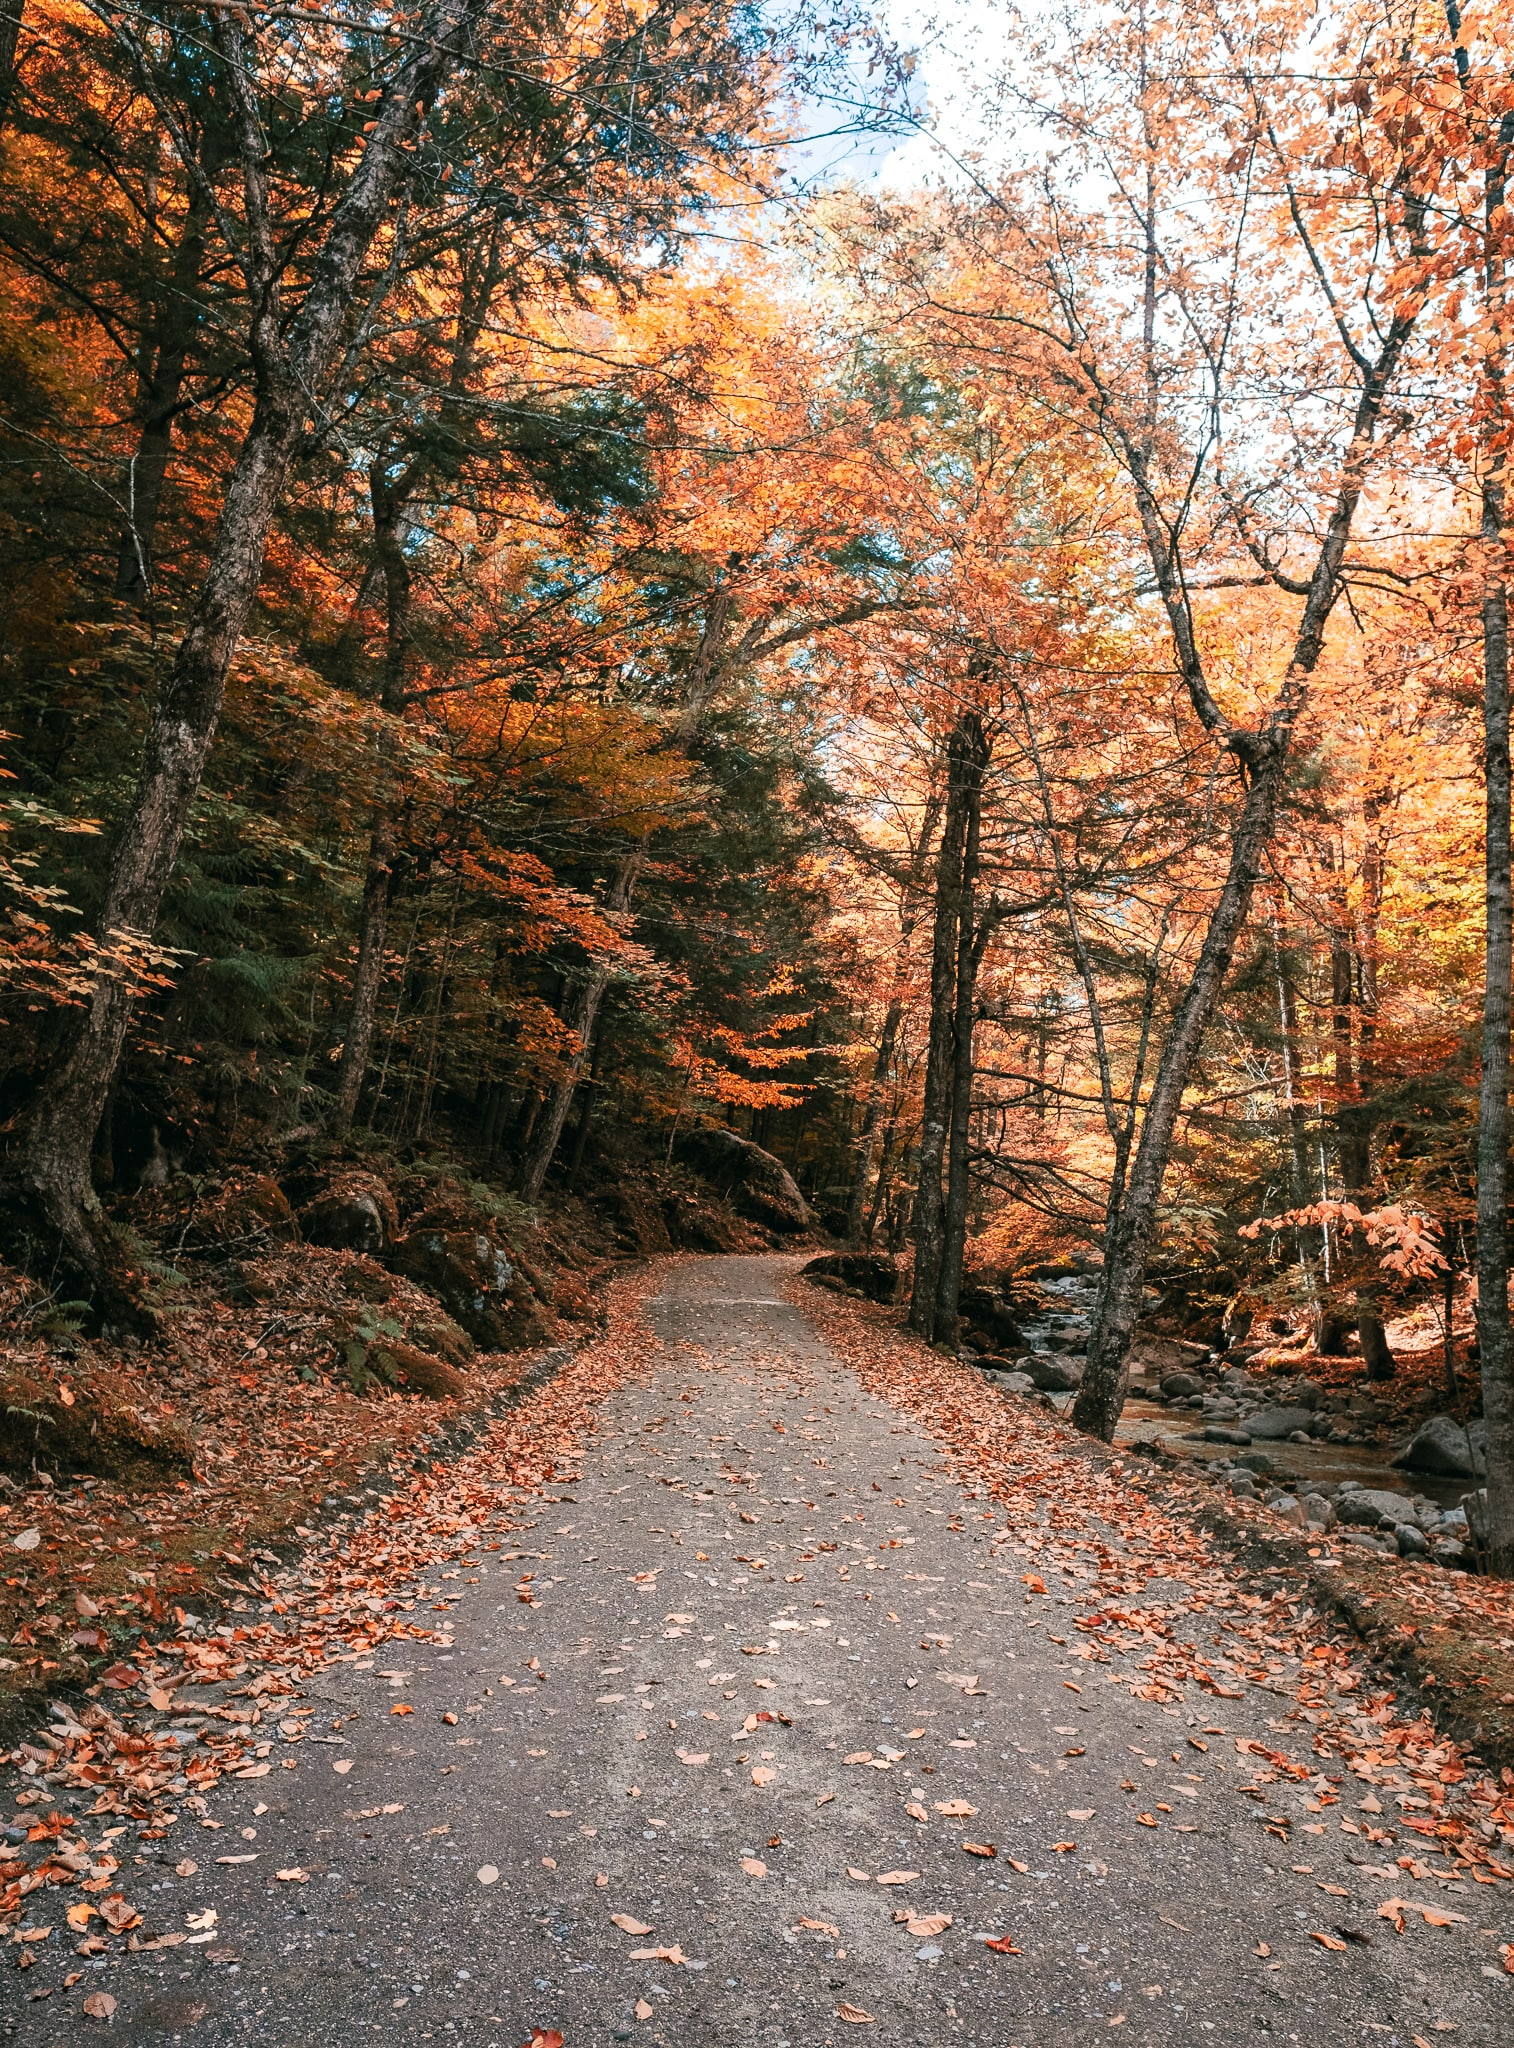 Lake Road in the Adirondack Mountain Reserve, Upstate New York